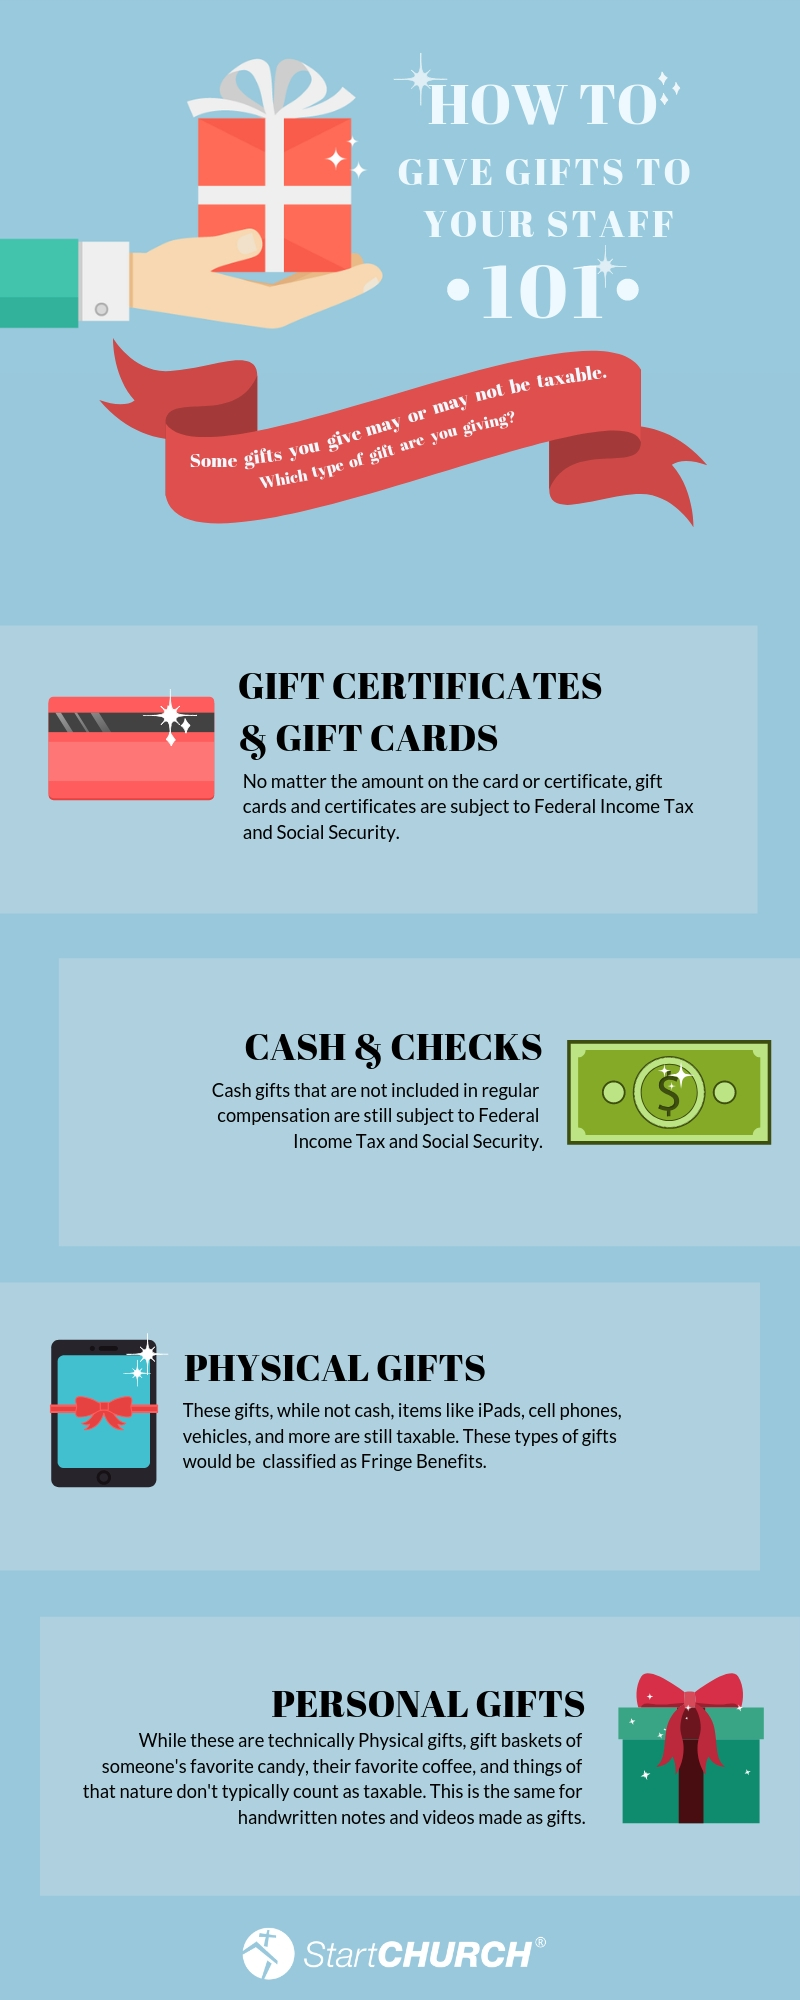 How to give gifts